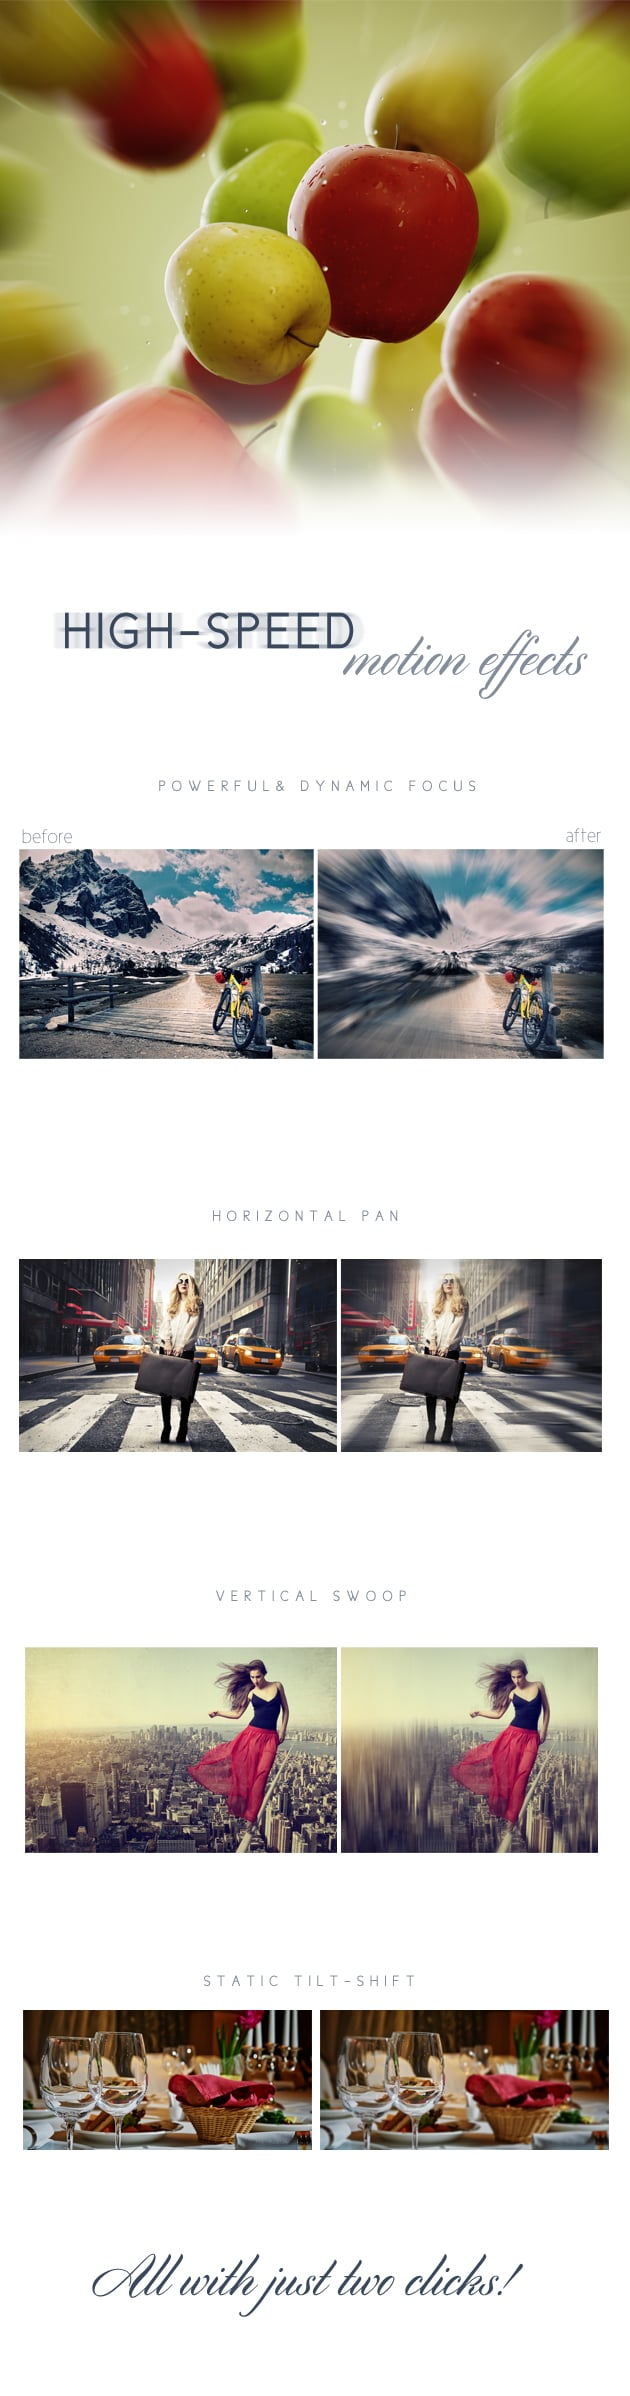 150 Magnificent Photoshop Actions + Bonus – Only $19